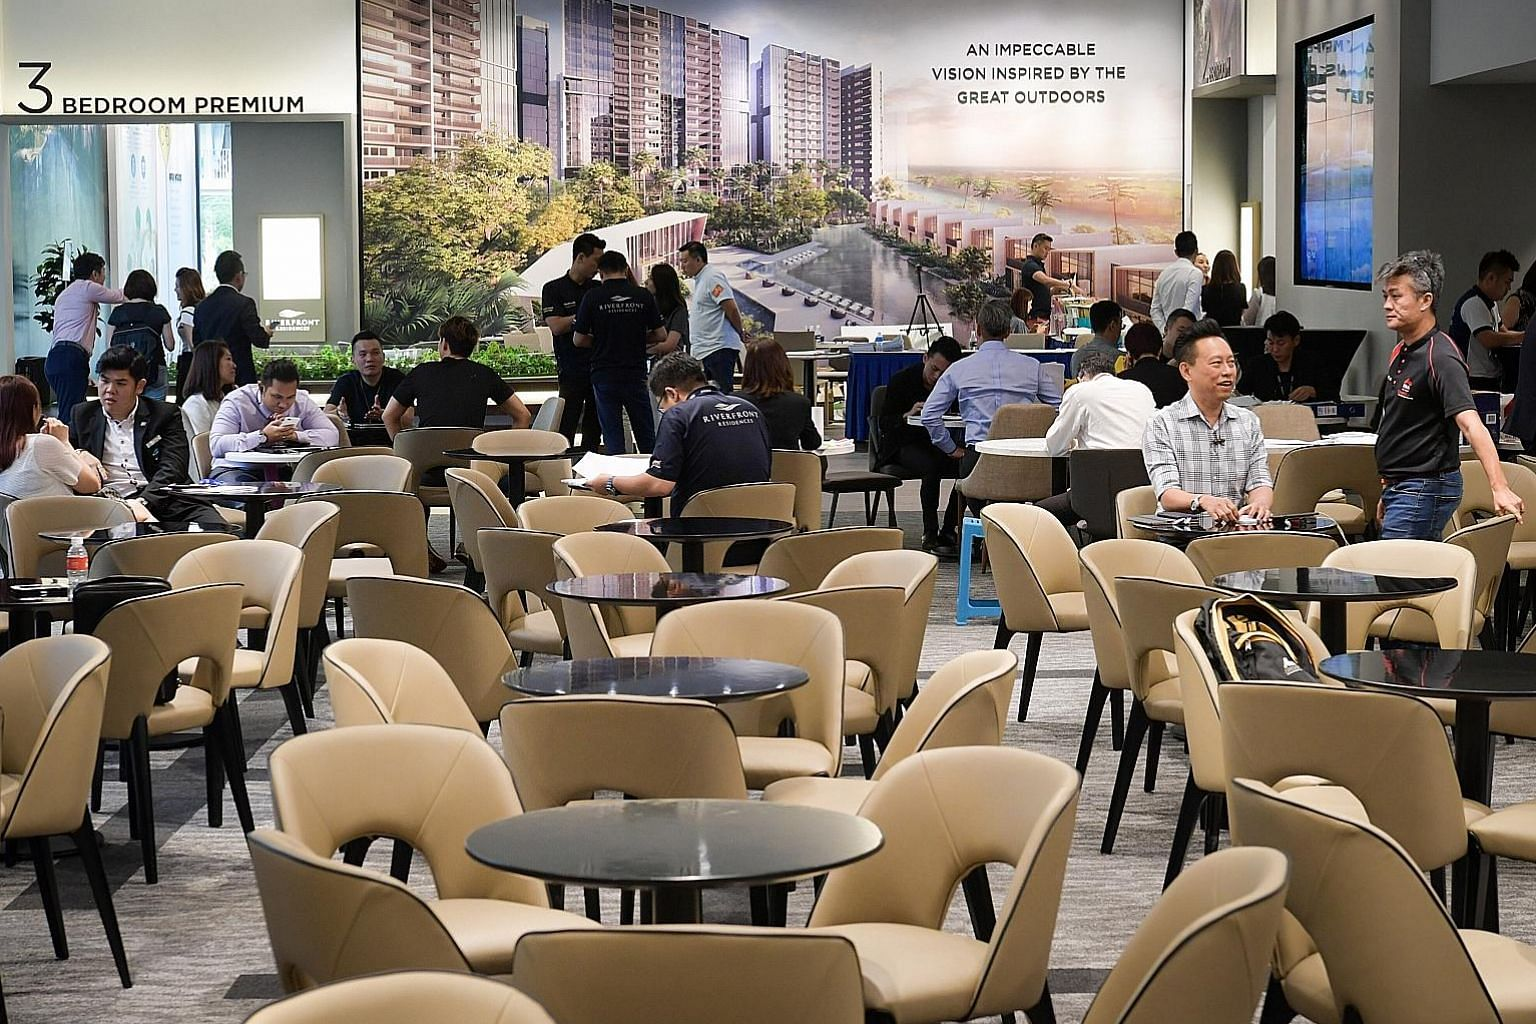 Household debt grew 3 per cent year-on-year in the third quarter, mainly on the back of a 3.4 per cent increase in housing loans in the same period, MAS said.